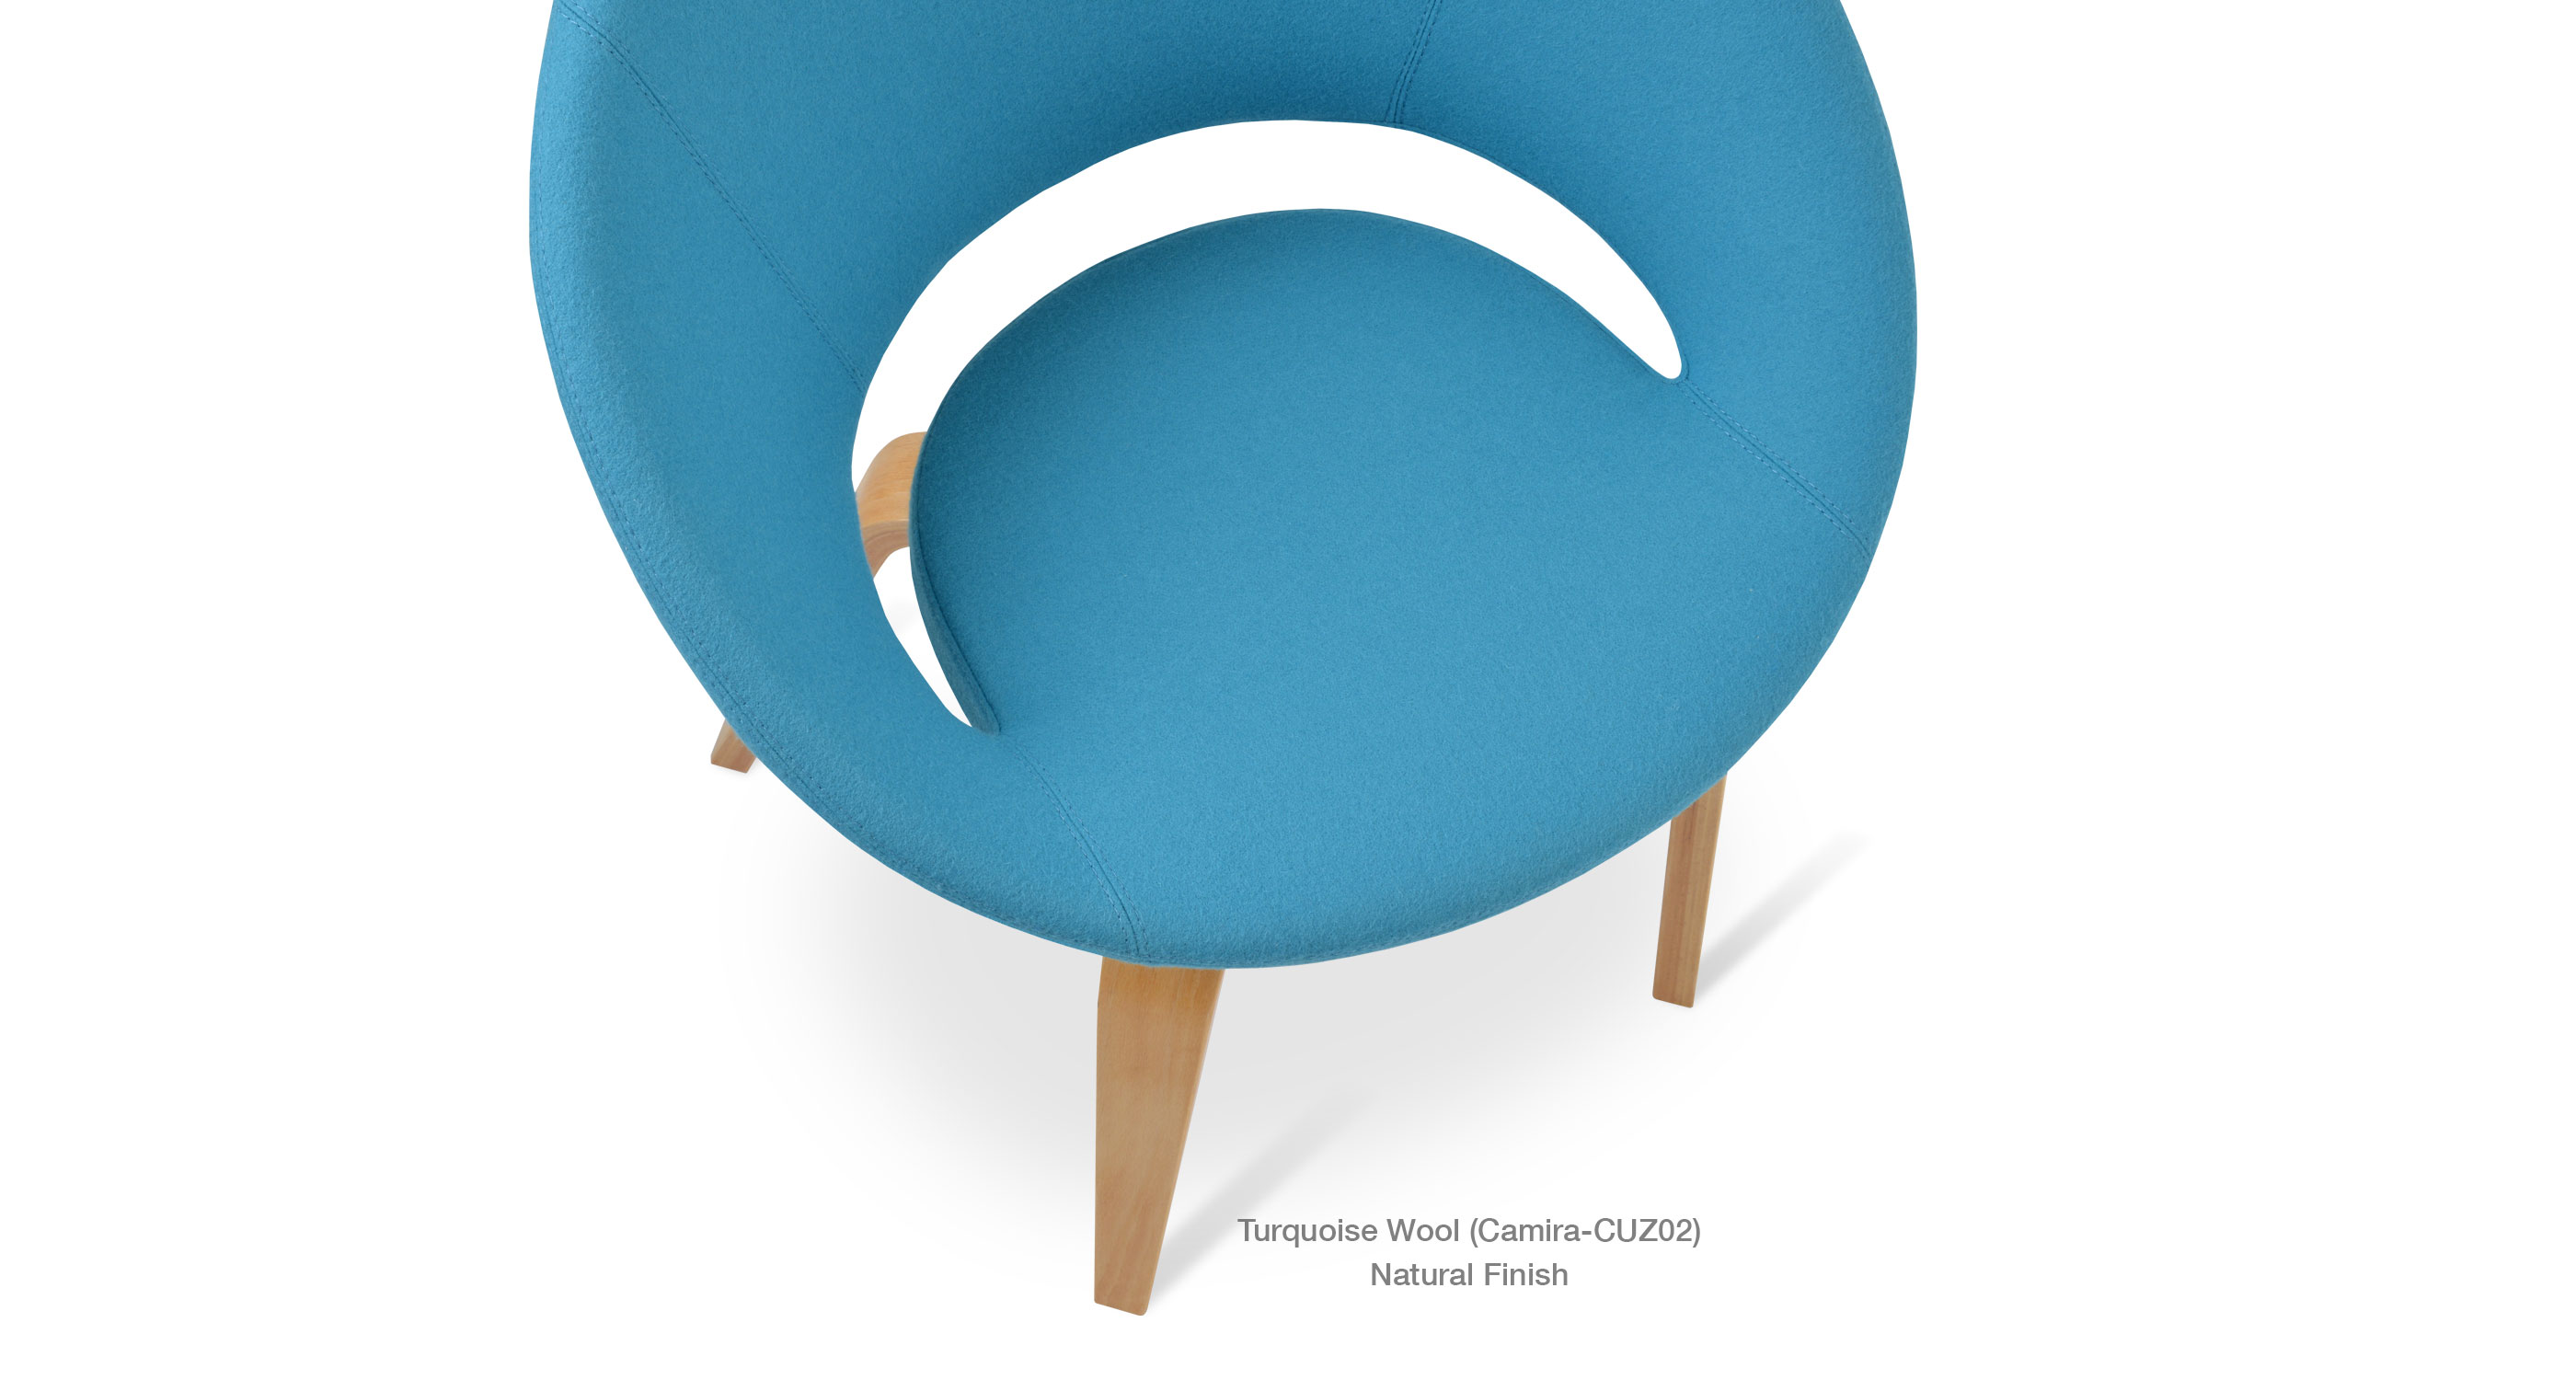 Crescent plywood turquoise close up